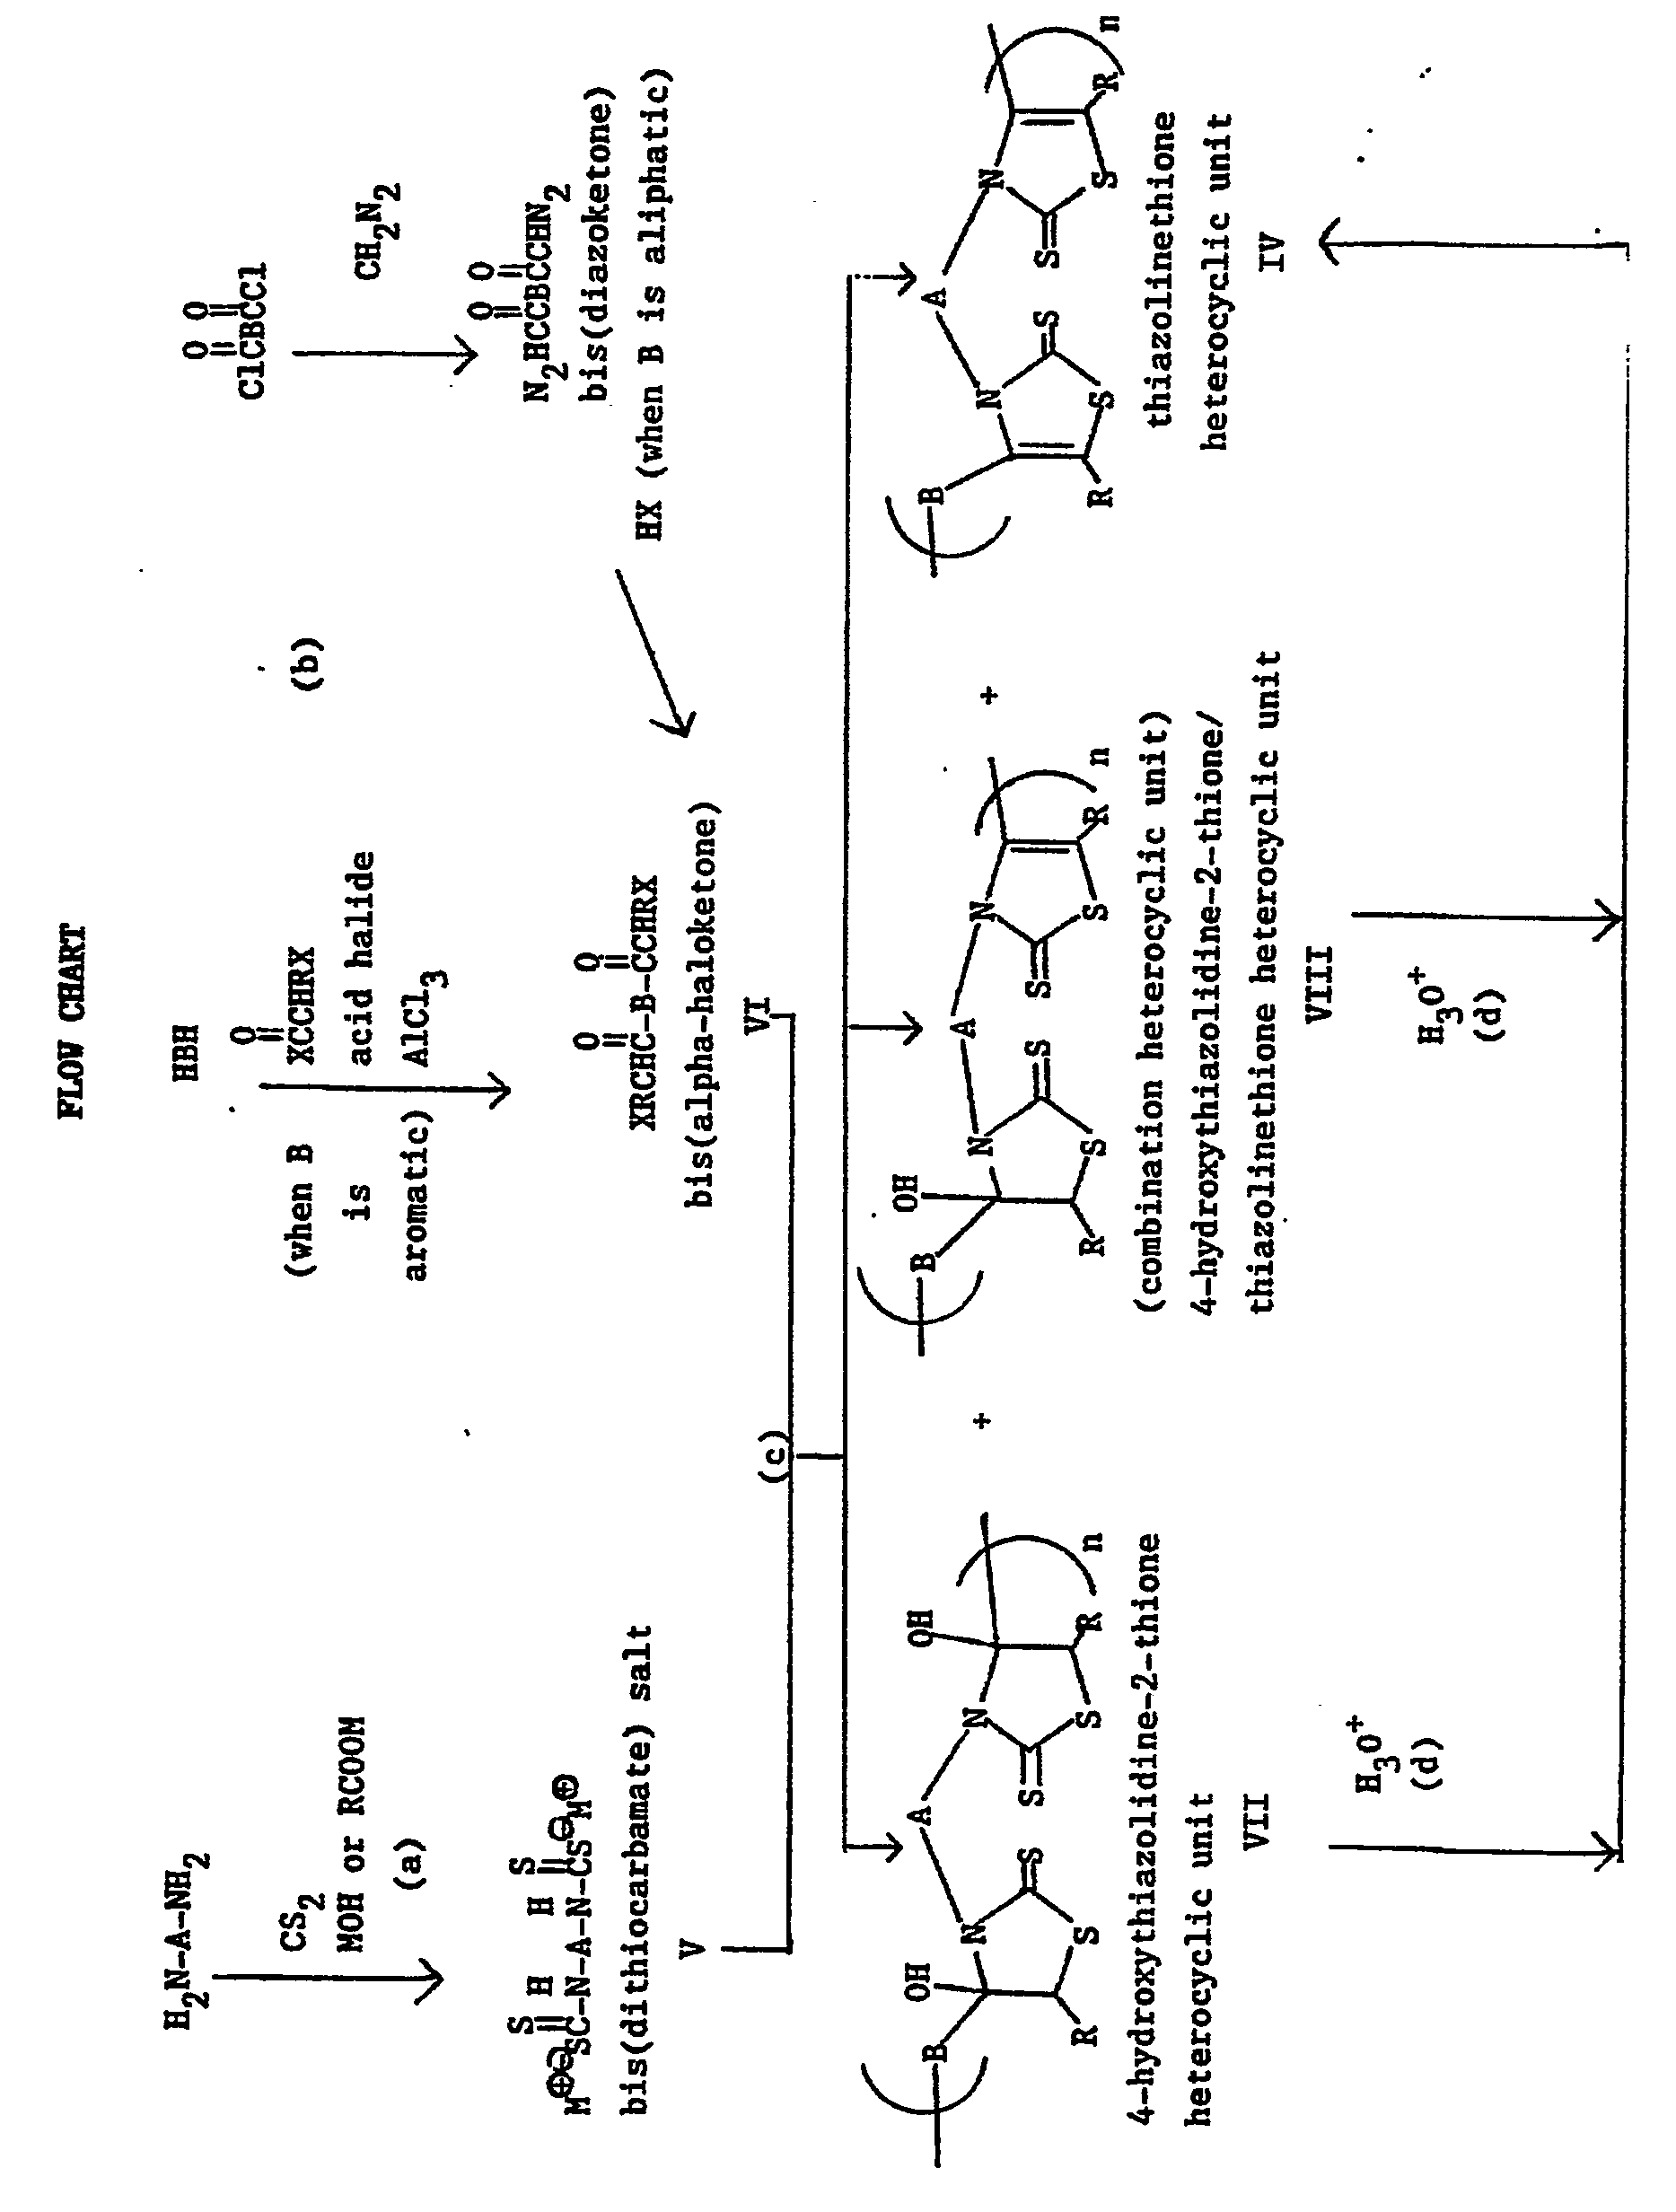 Ep0225804b1 Thiazolinethione Containing Polymers Google Patents Process Flow Diagram R A Novel The Steps Of Which Are Shown In Chart Below Wherein B And N As Defined Above M X